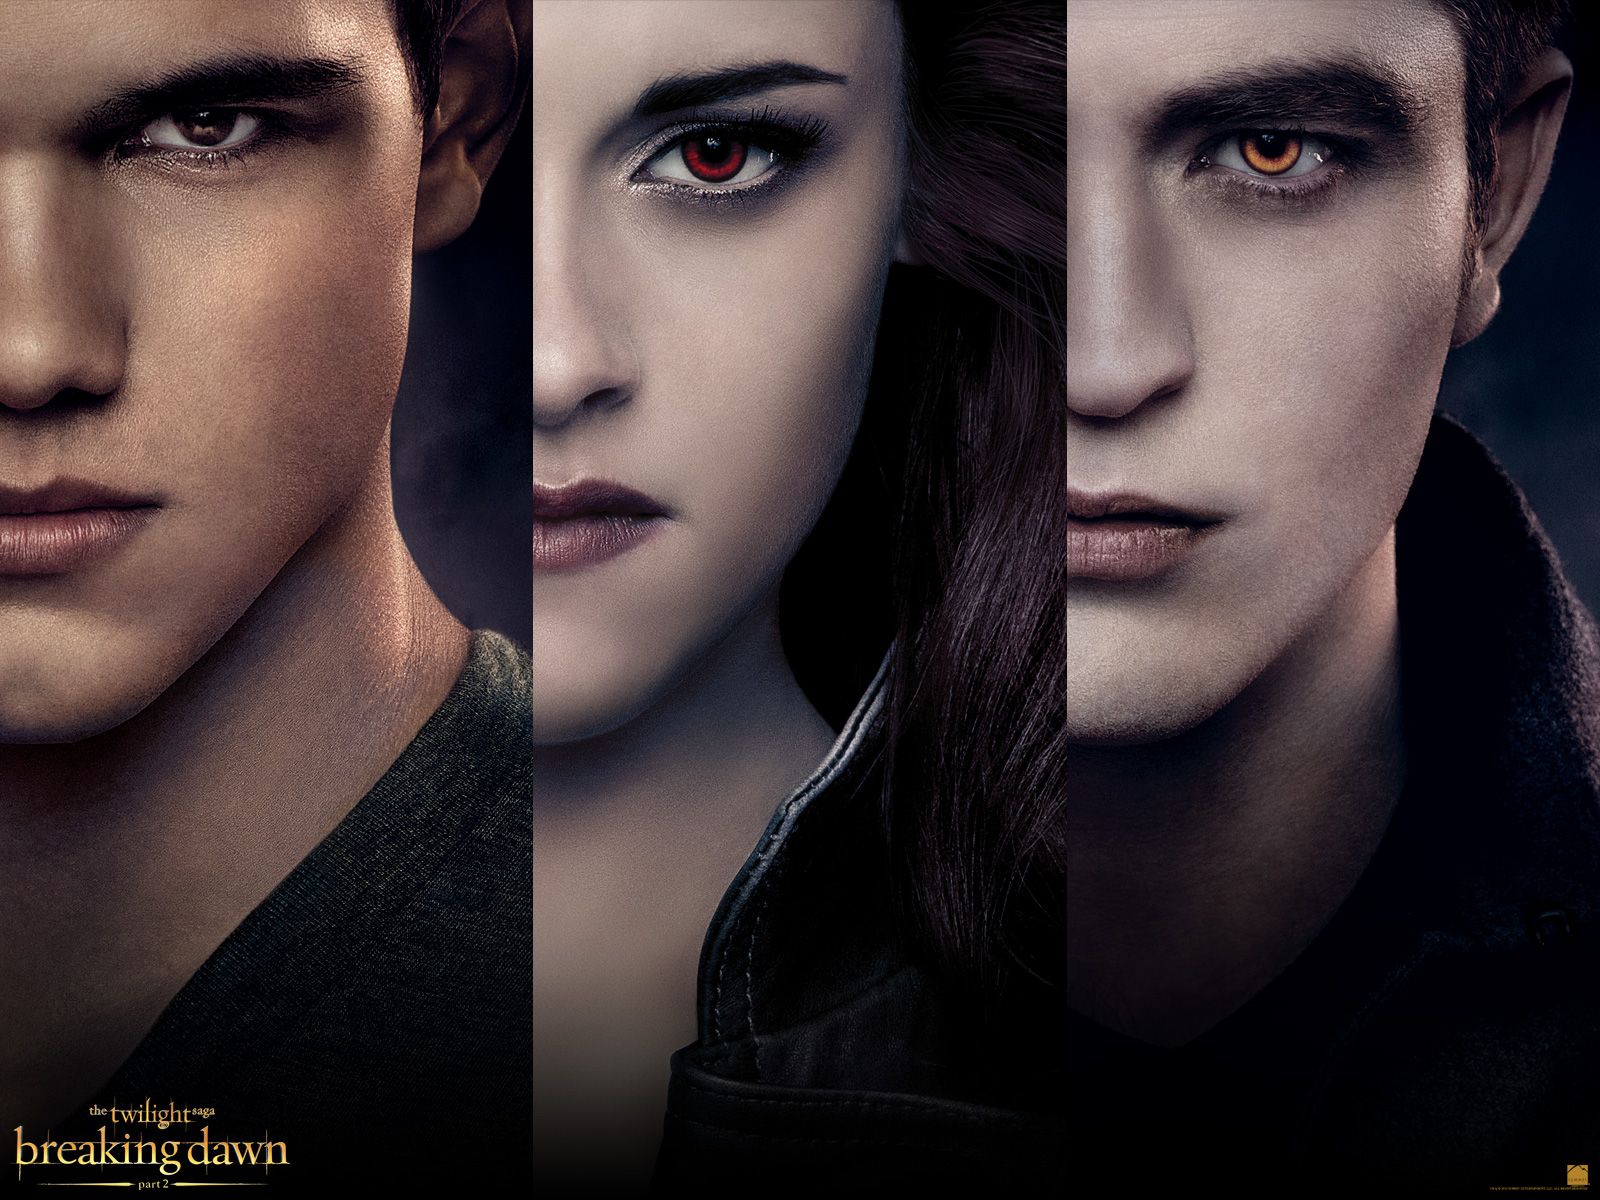 Breaking Dawn The Twilight Saga, Book 4